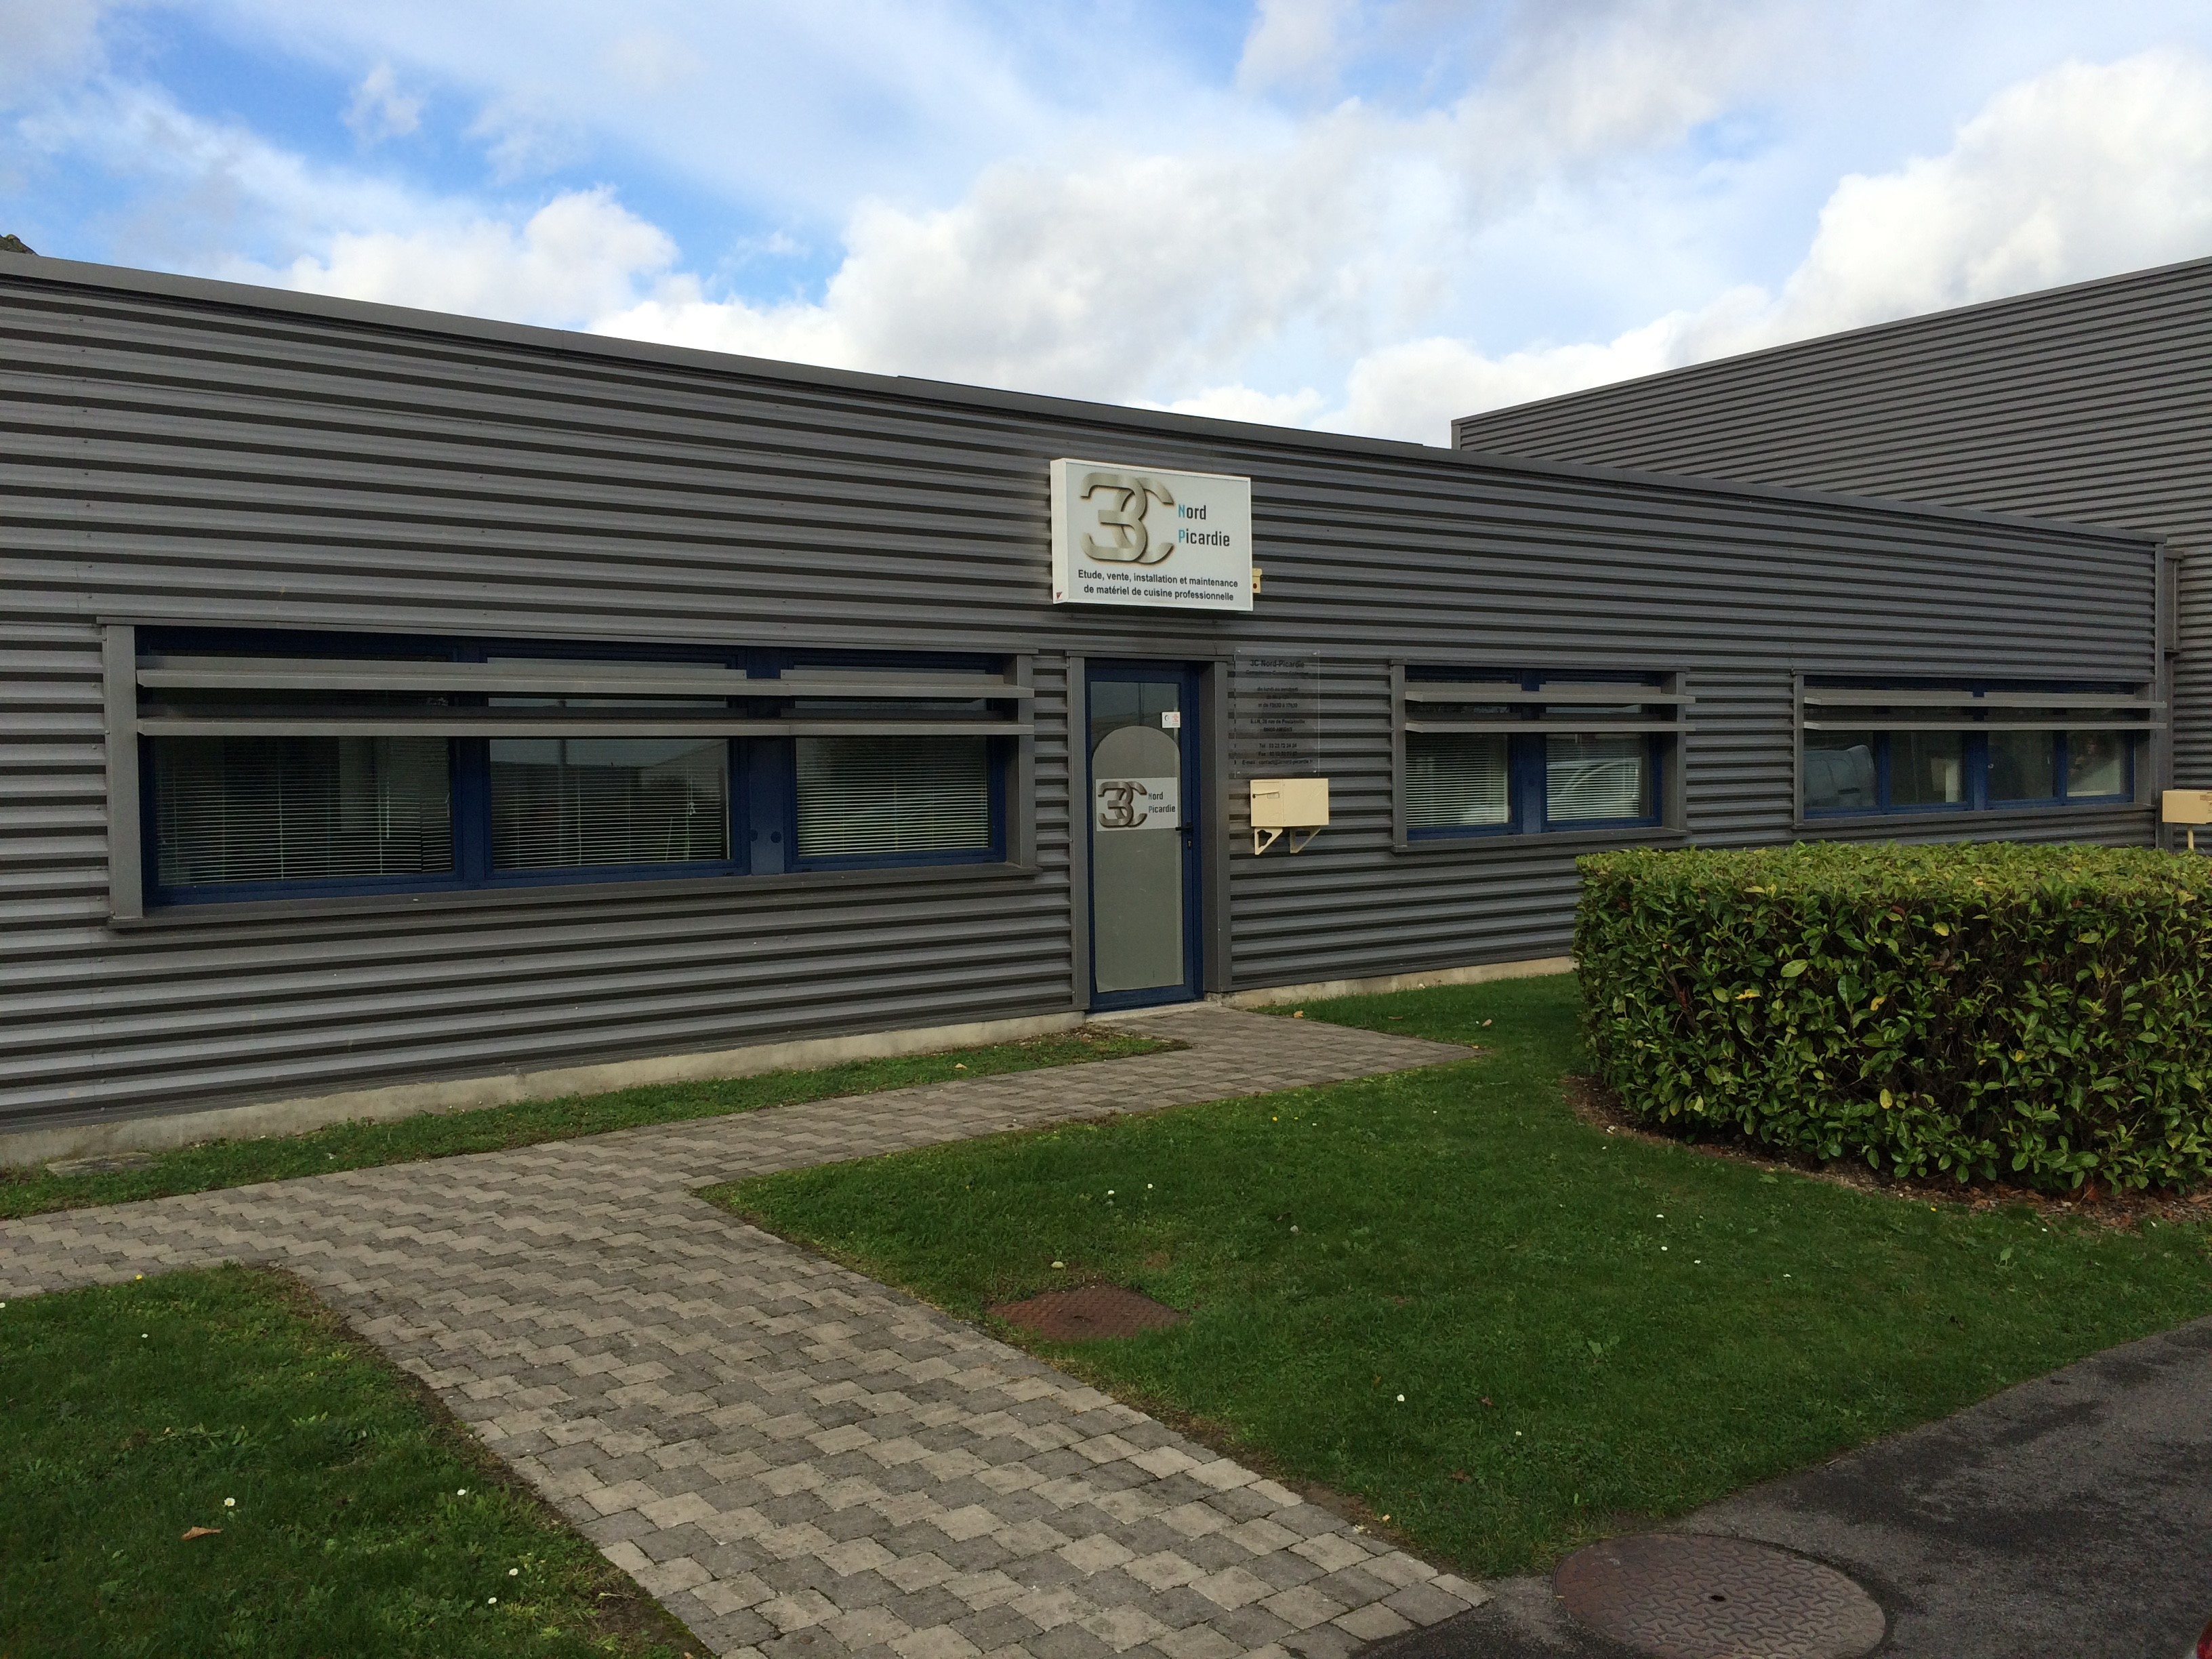 Agence 3c nord picardie 3c - Competence cuisine collective ...